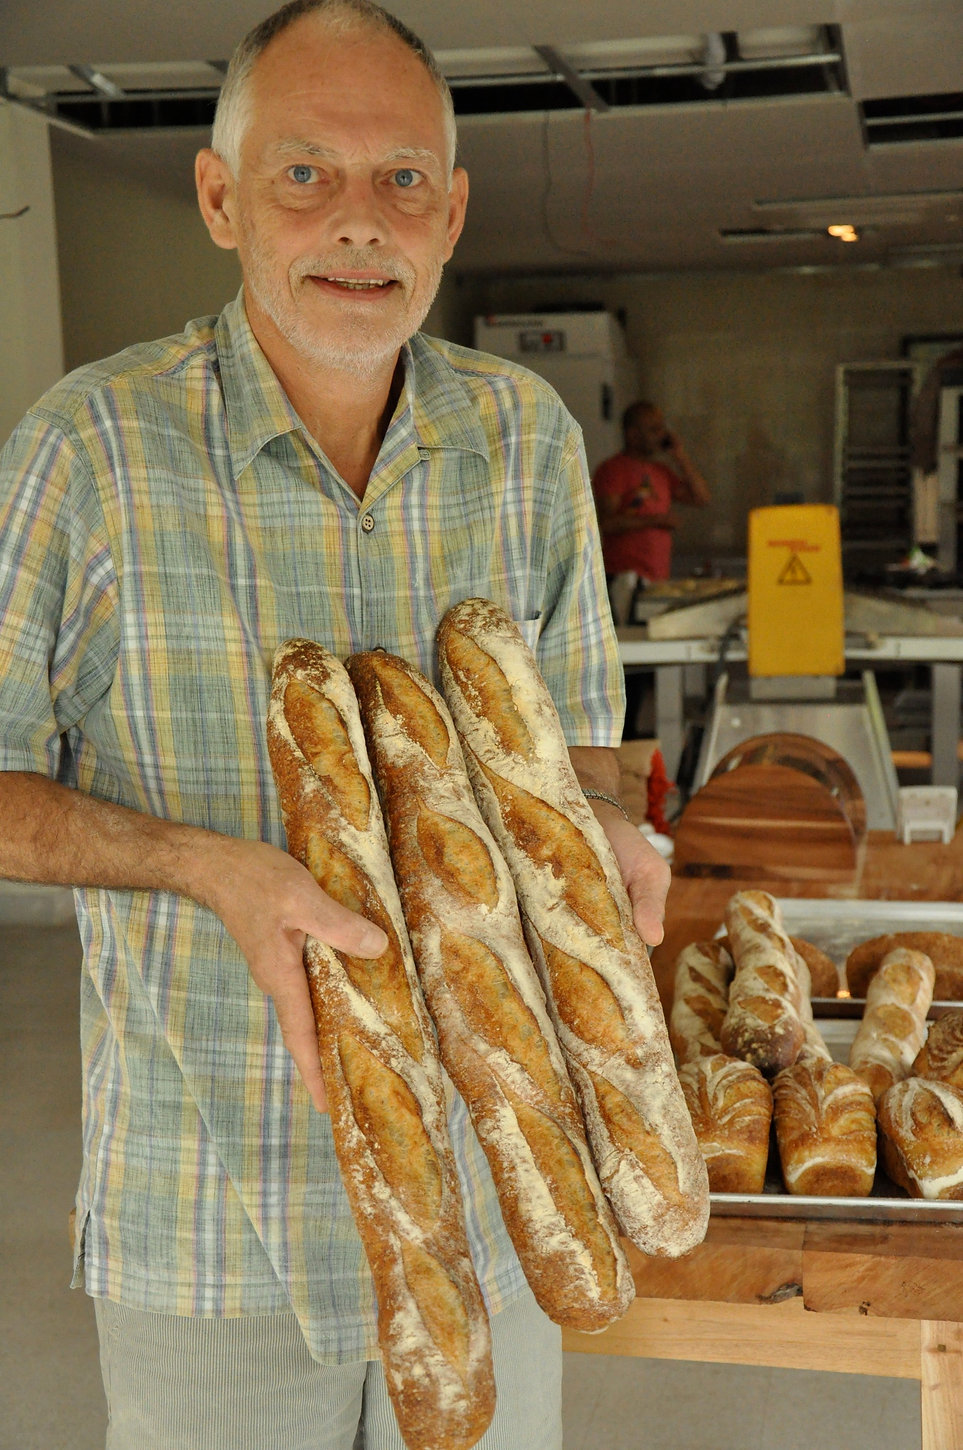 Maurice Chaplais Bakery Consulting Artisan Bread with his baguettes made with a levain and Poolish, at Holey Bakery Dhaka, Bangladesh